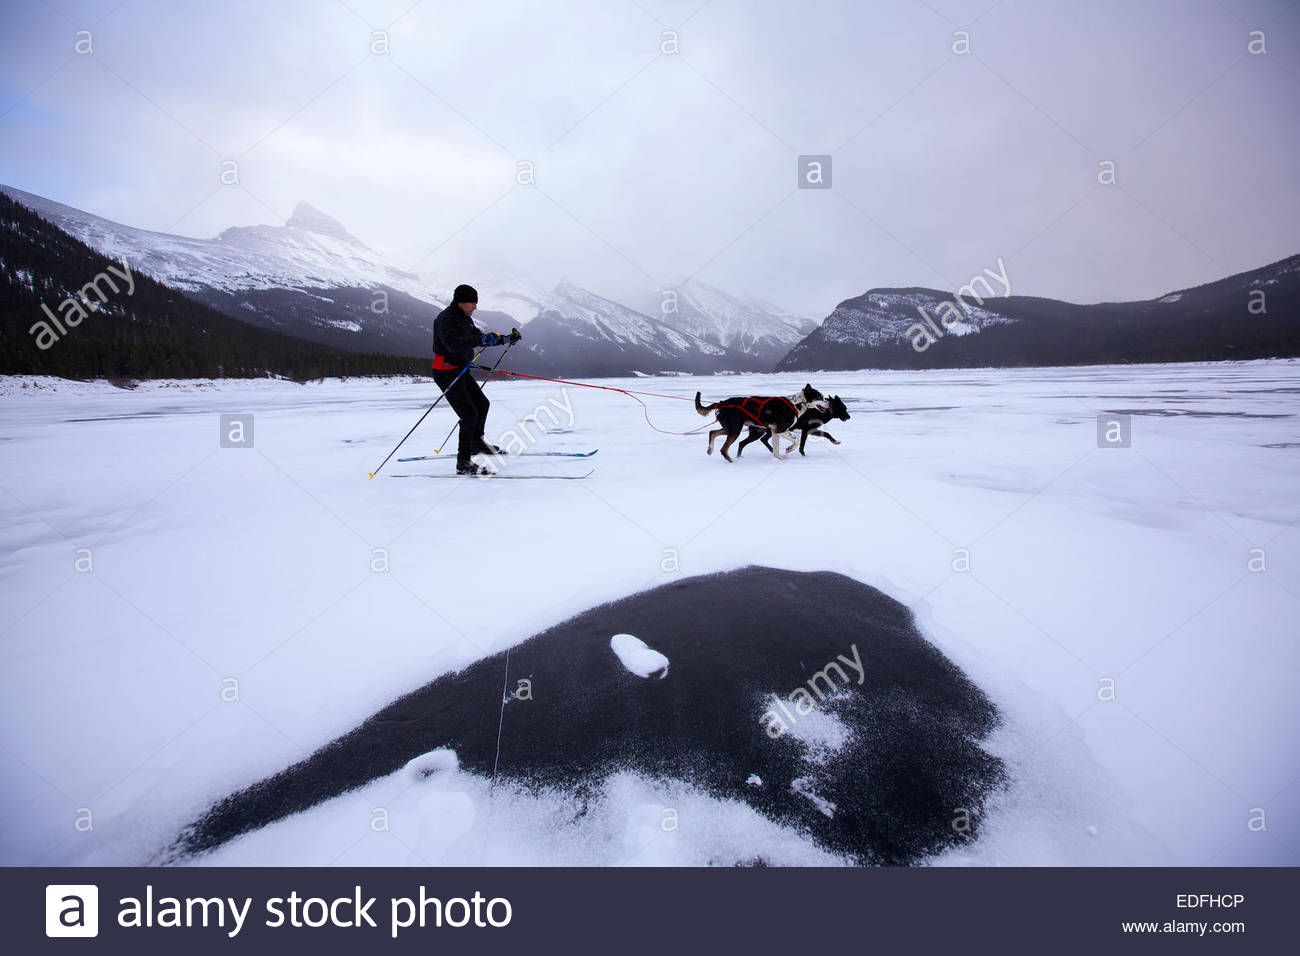 Skijoring, a winter sport where a person on skis is pulled by a dog across a frozen lake. - Stock Image